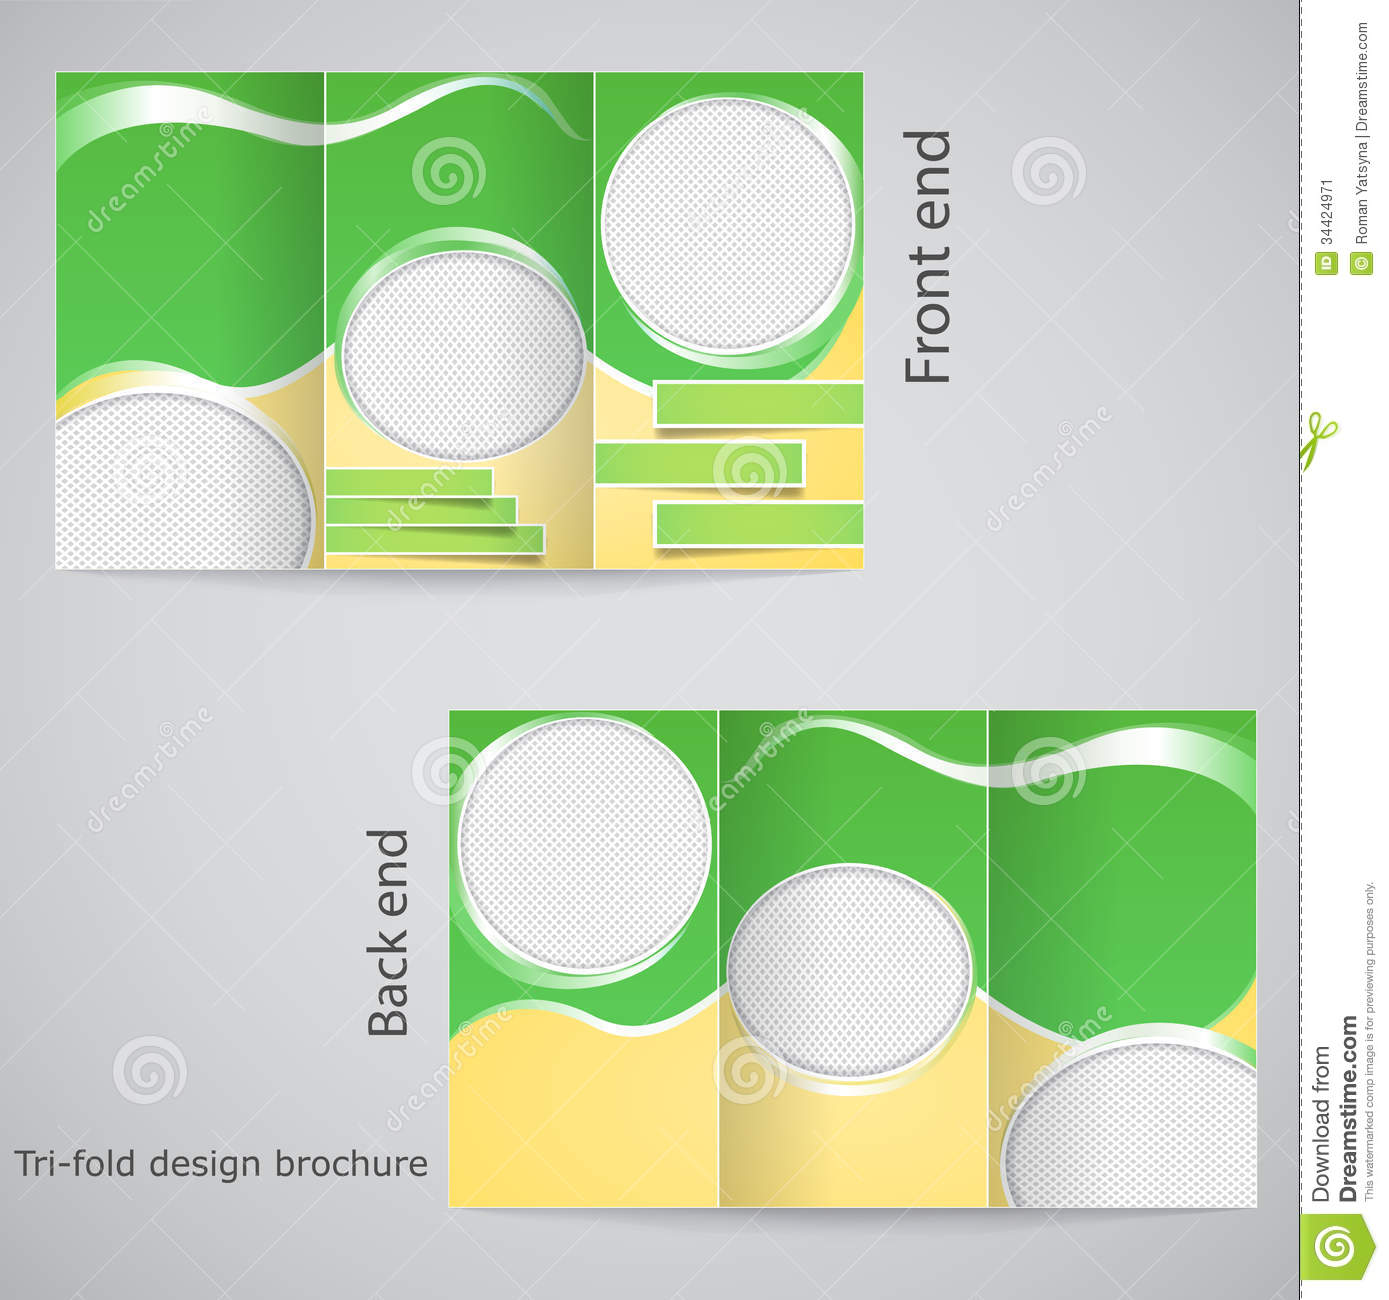 Tri fold brochure design stock vector illustration of for Tri fold brochure templates